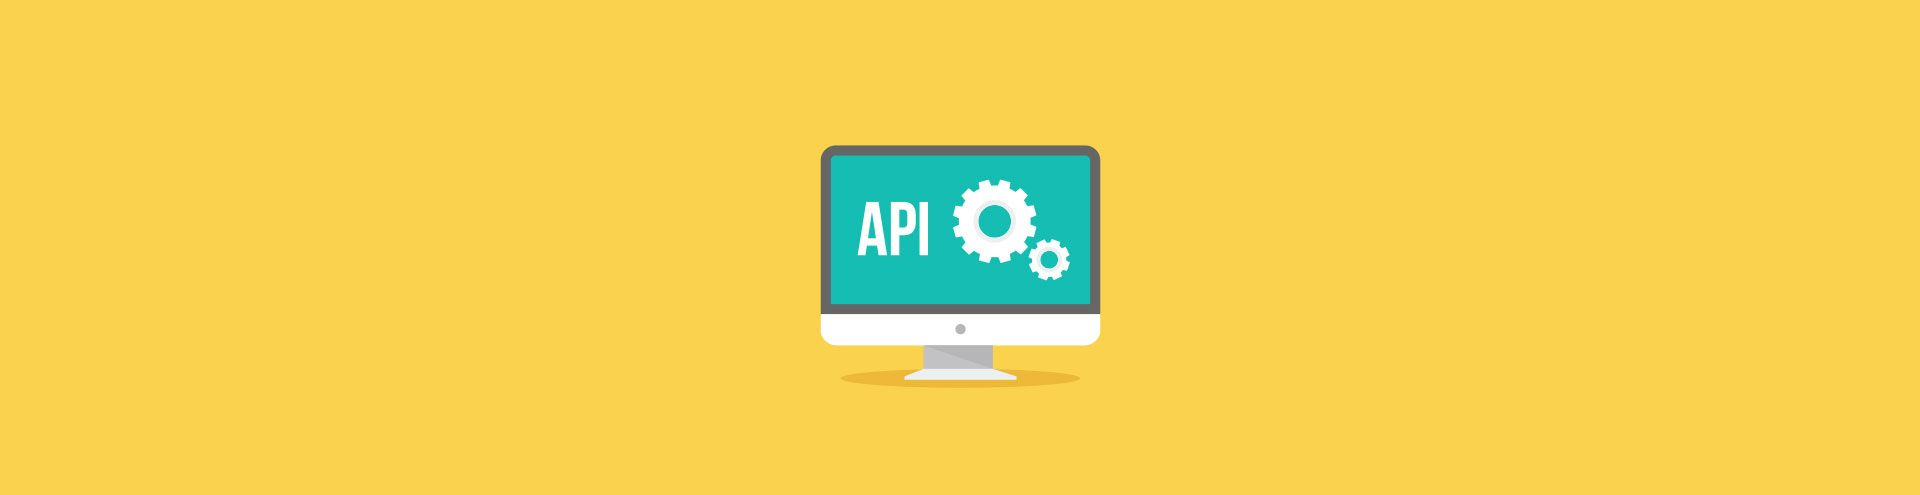 Express js API and REST API Organization: tips, examples and techniques